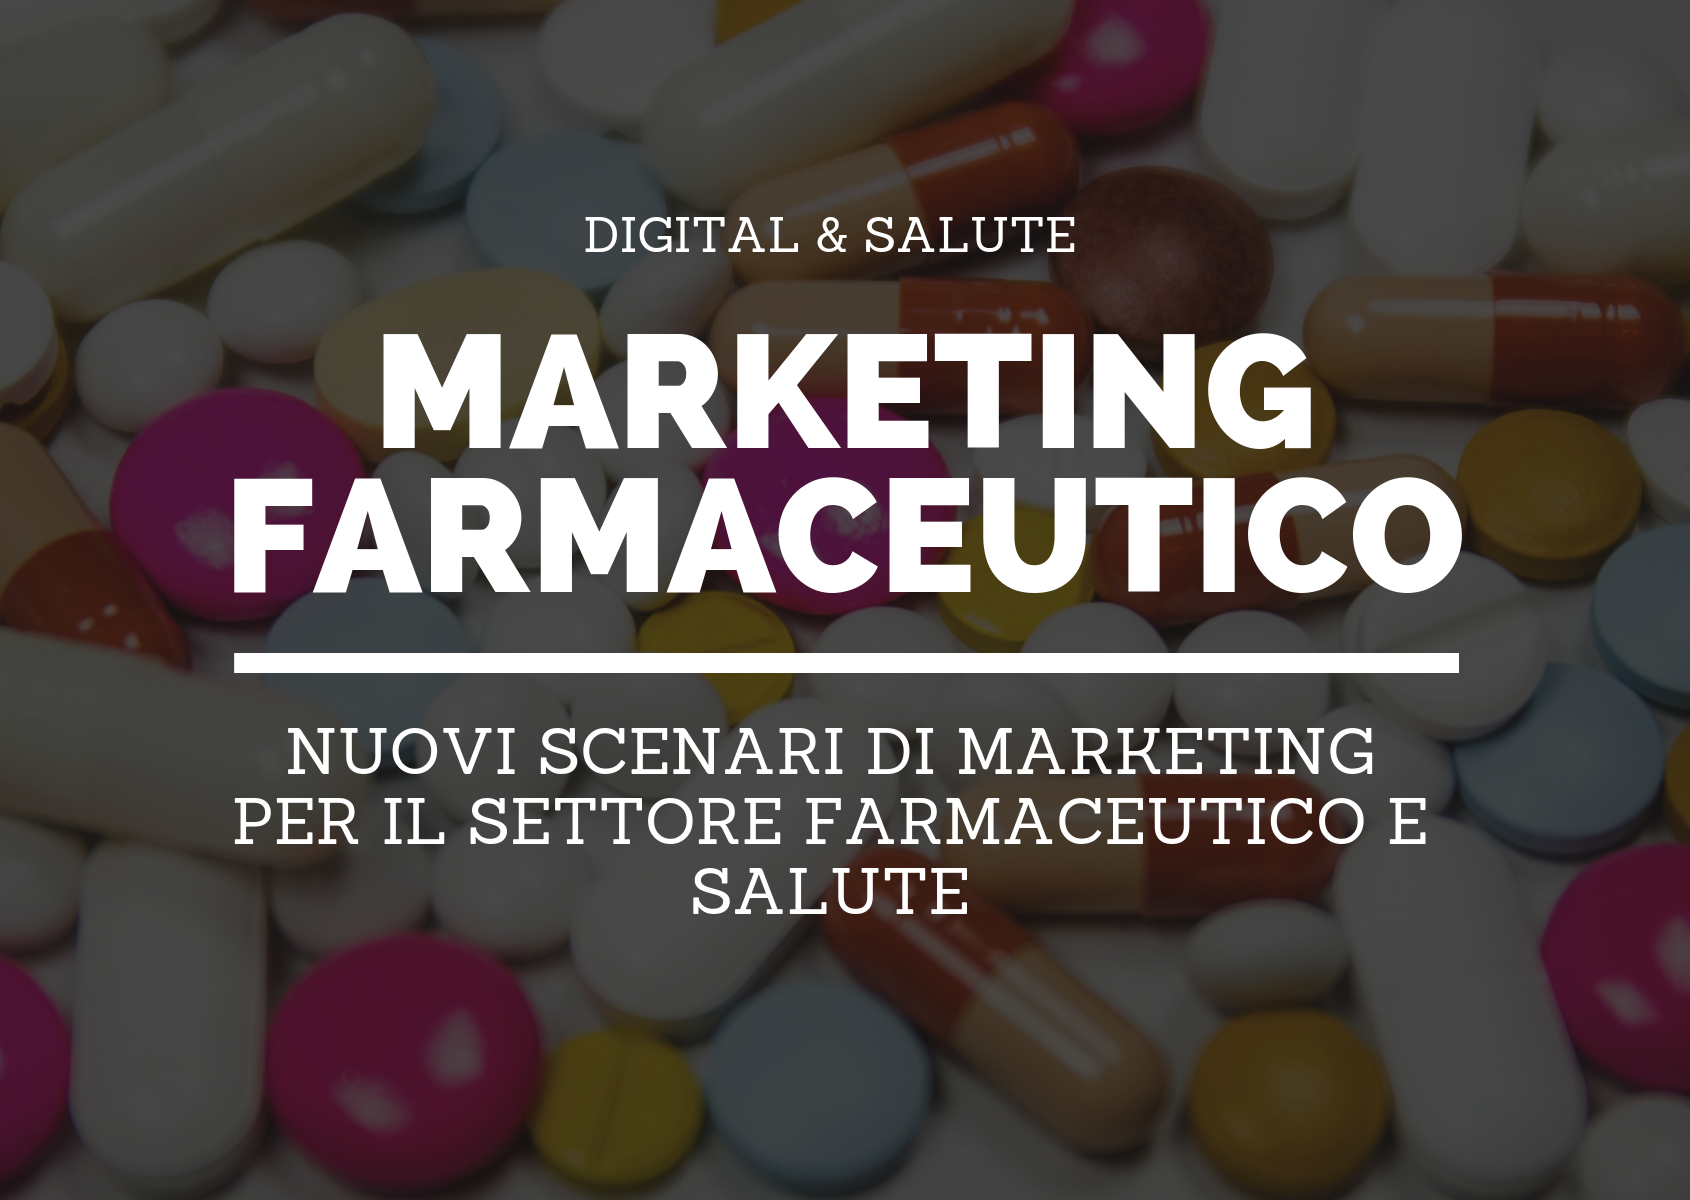 Marketing farmaceutico (1)